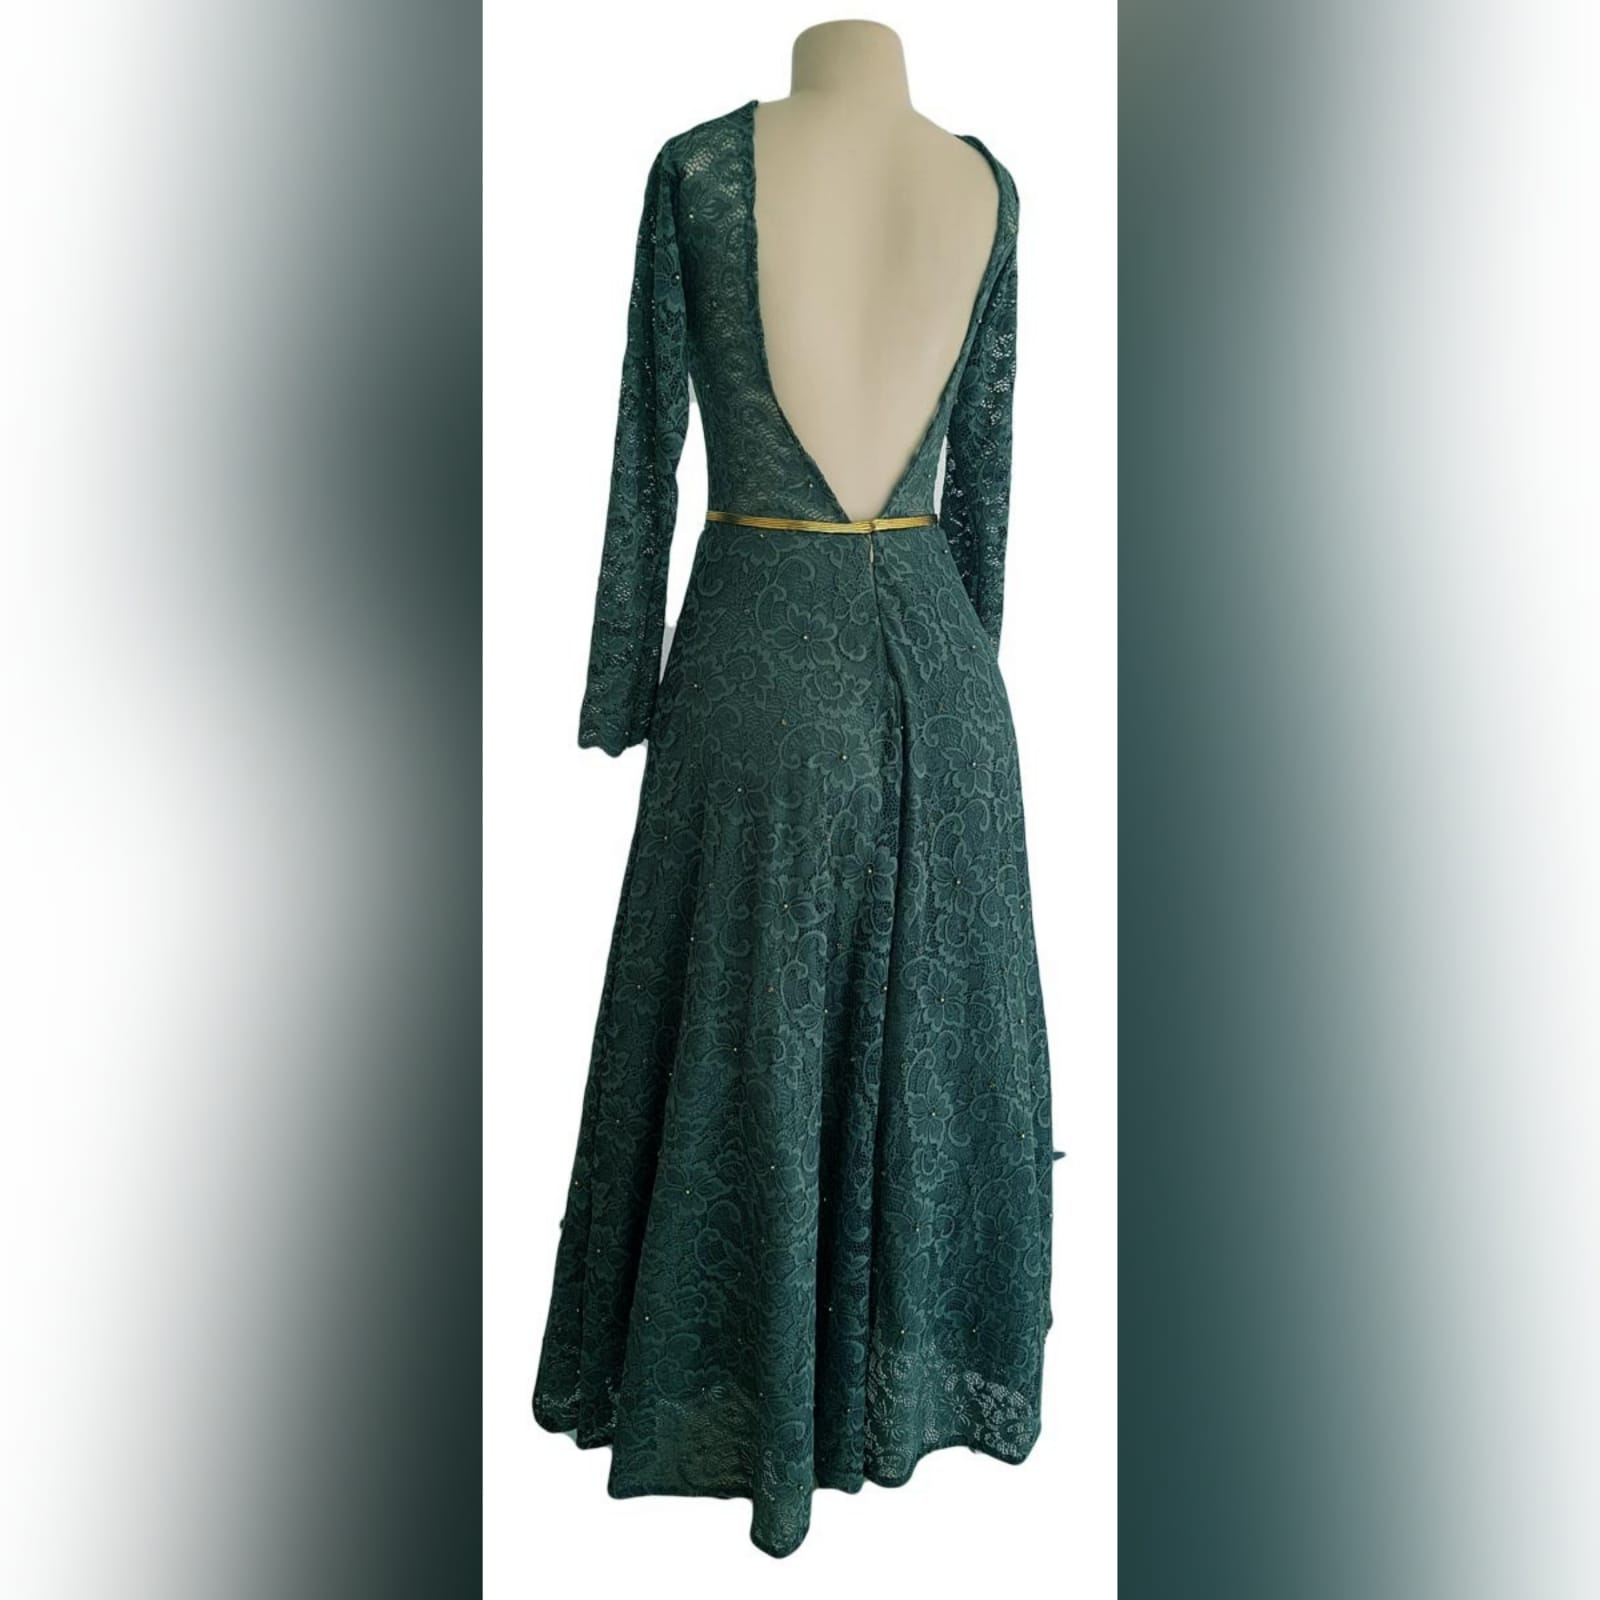 Tea length fully lace olive green evening dress 6 reneilwe looked charming with her tea length fully lace olive green evening dress. Bodice in sheer lace with long sleeves and open back for a feminine touch. With scattered gold beads and a thin removable gold belt to give it a chic look.